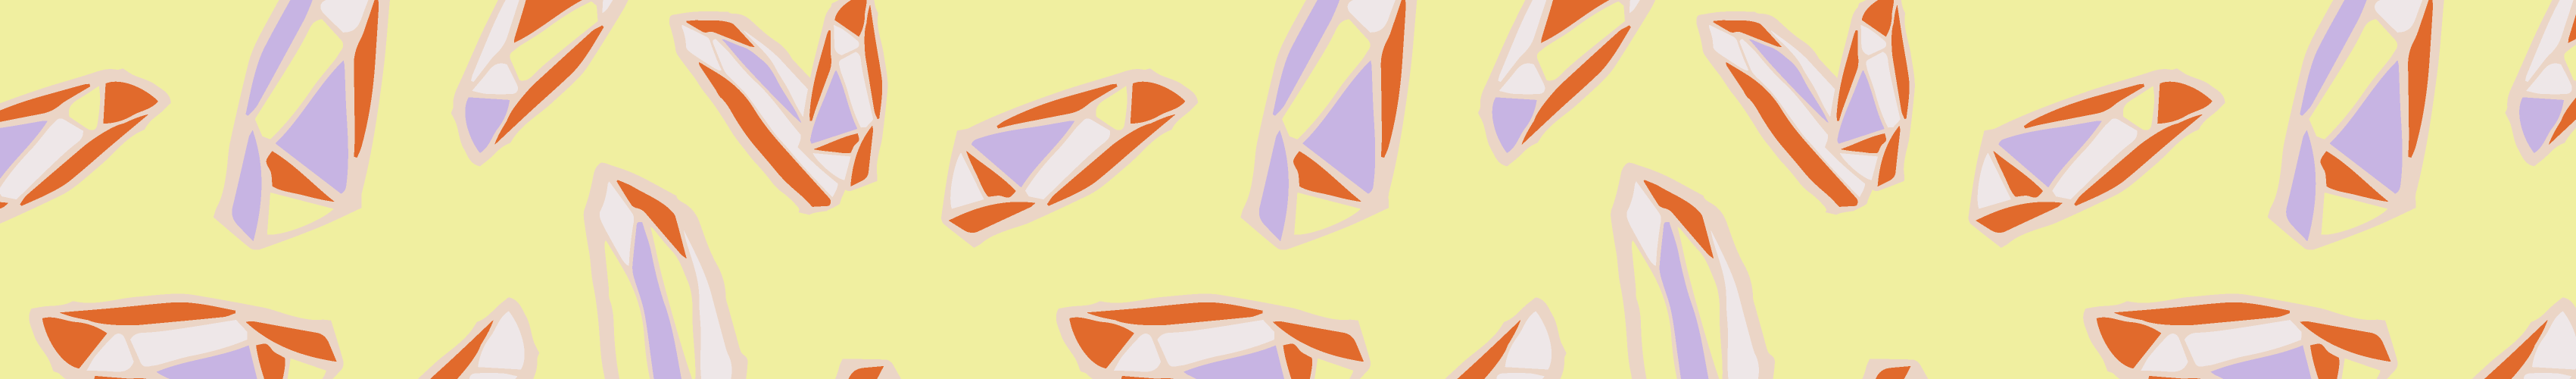 falling_diamonds_banner